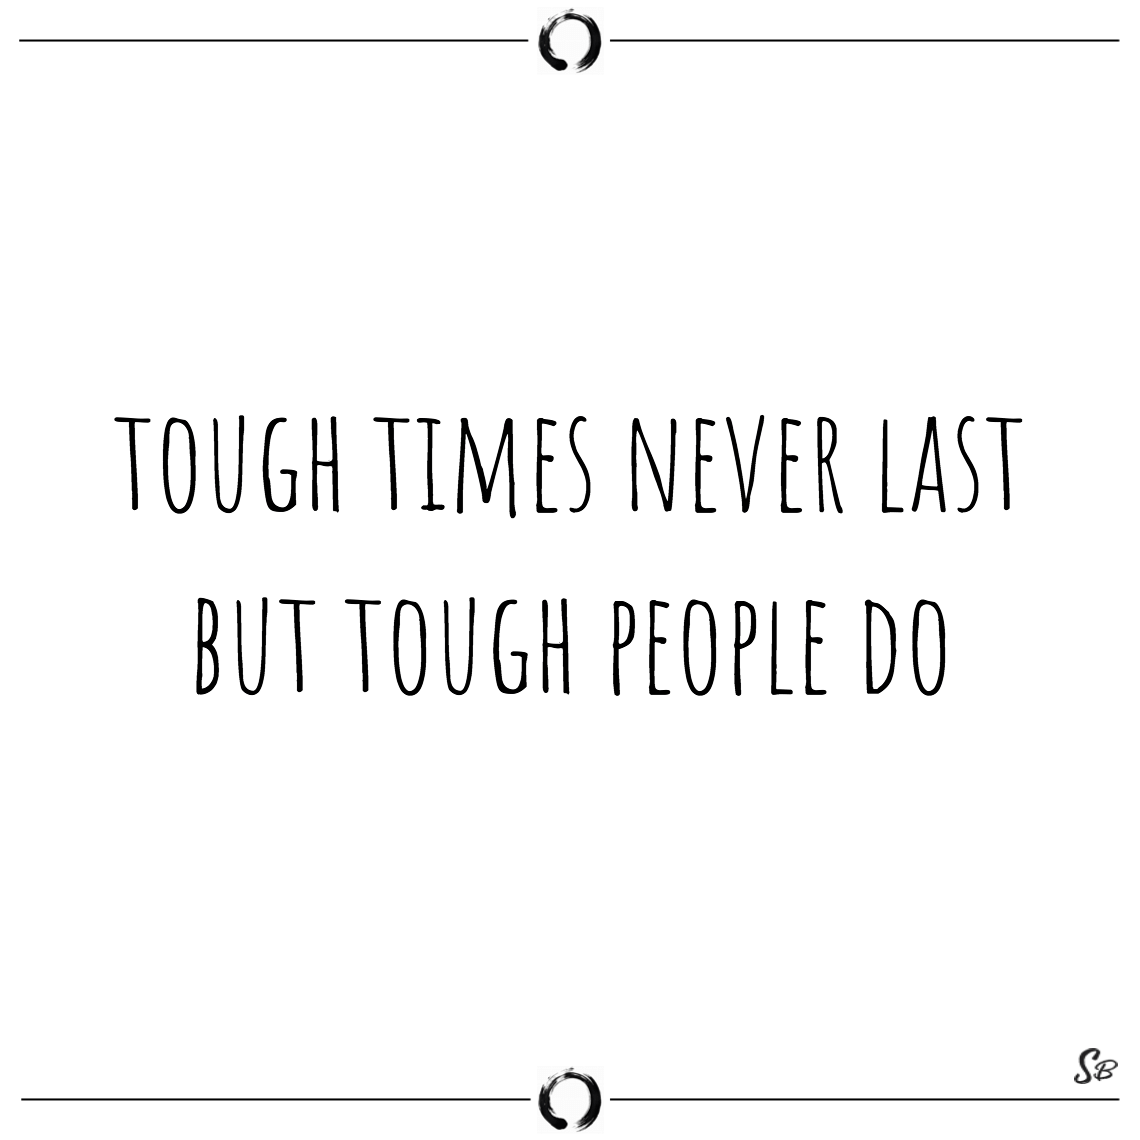 Tough times never last but tough people do dr. robert schuller